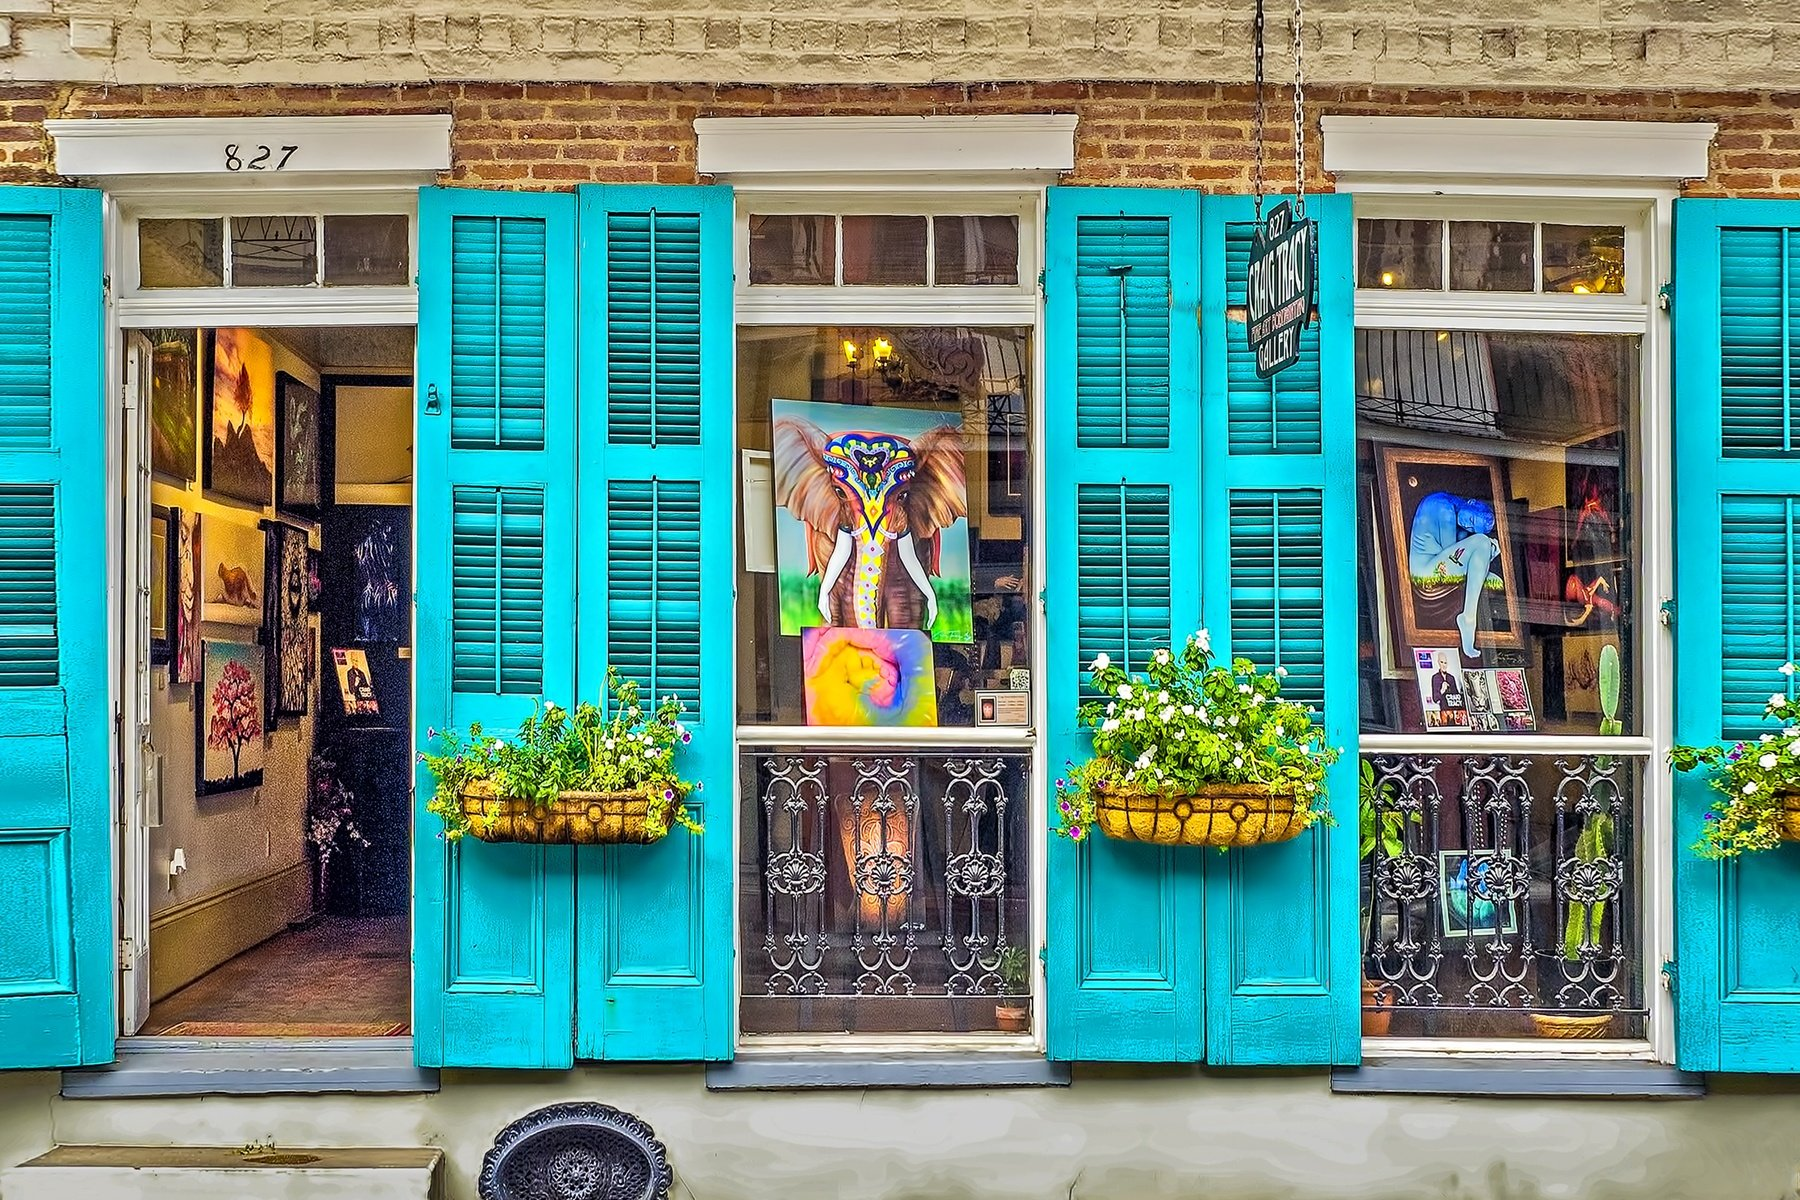 827 ROYAL STREET - Just one of the many interesting and fun store fronts in the French Quarter district of New Orleans. This happens to be the Craig Tracy Gallery.